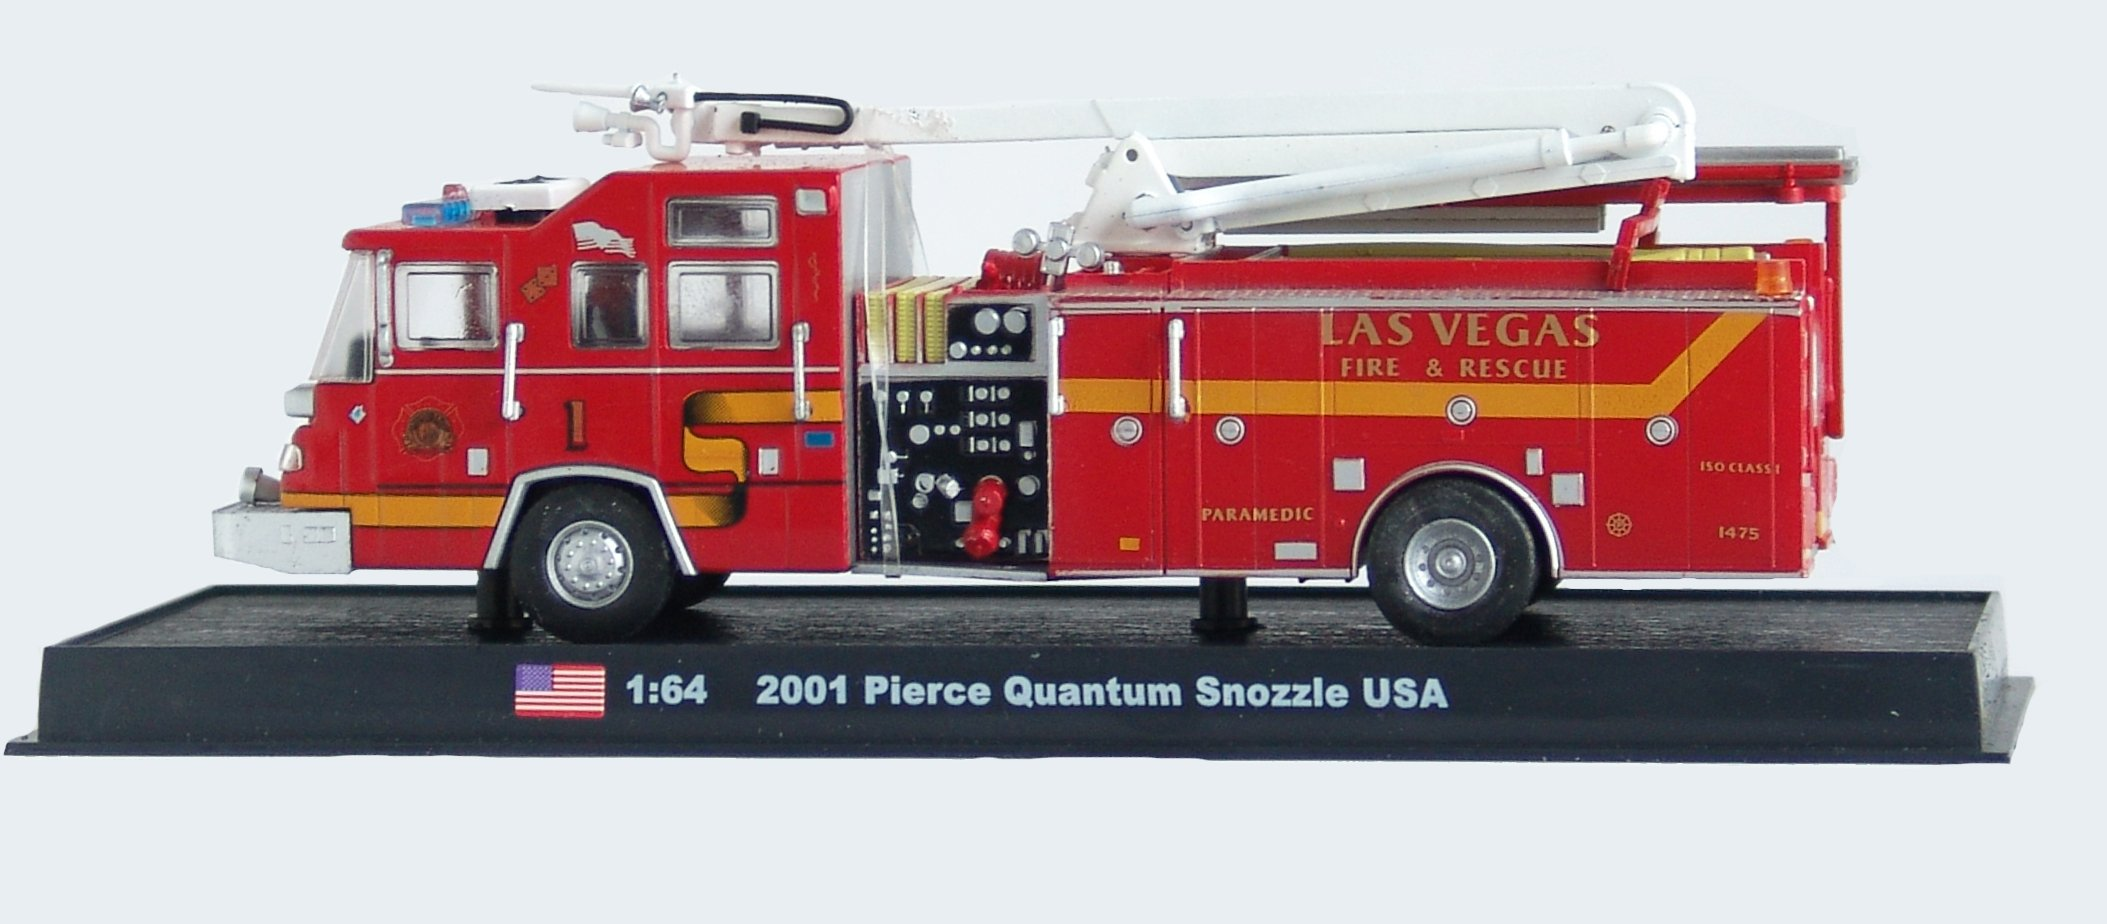 Pierce Quantum Snozzle Fire Truck Diecast 1:64 Model (Amercom GB-19)